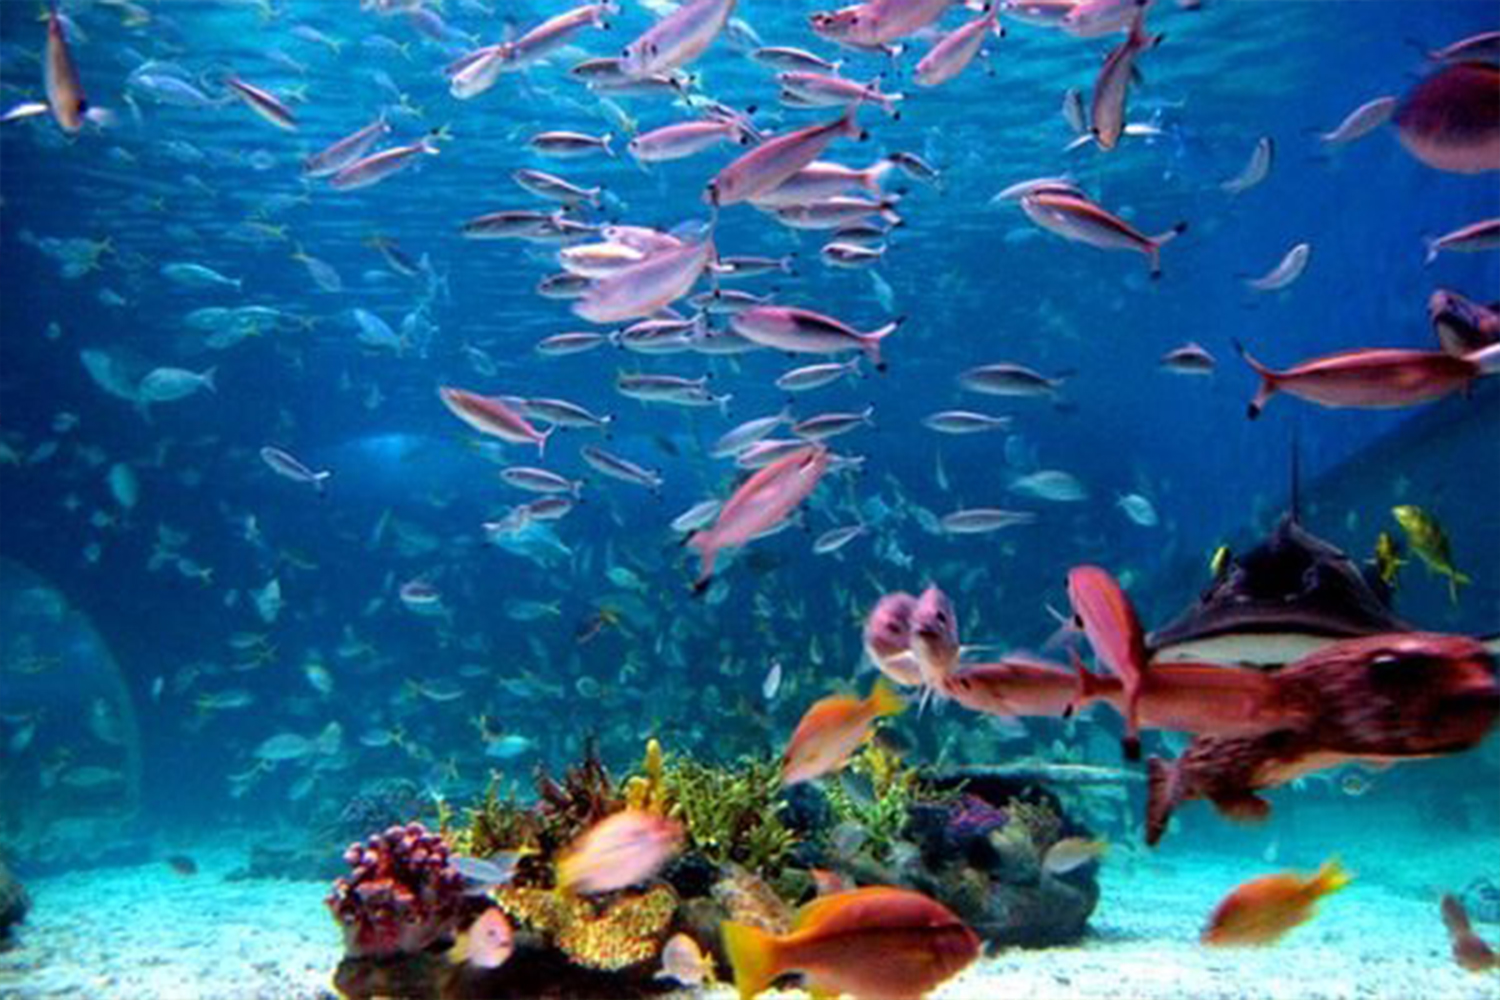 All kinds of fish dating site 2